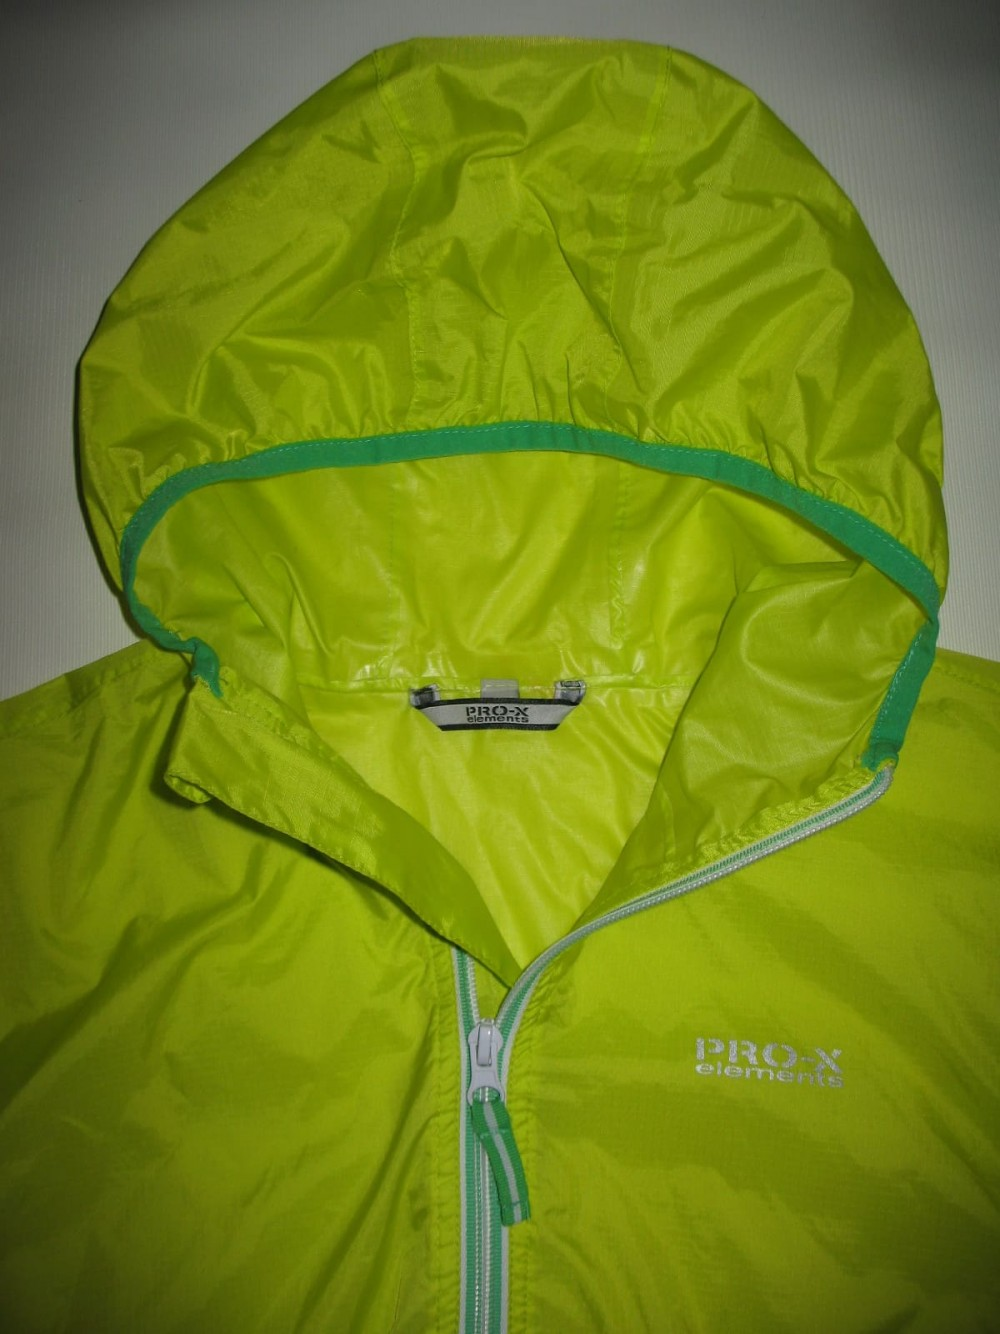 Куртка PRO-X elements waterproof yellow jacket (размер 164см/S) - 3